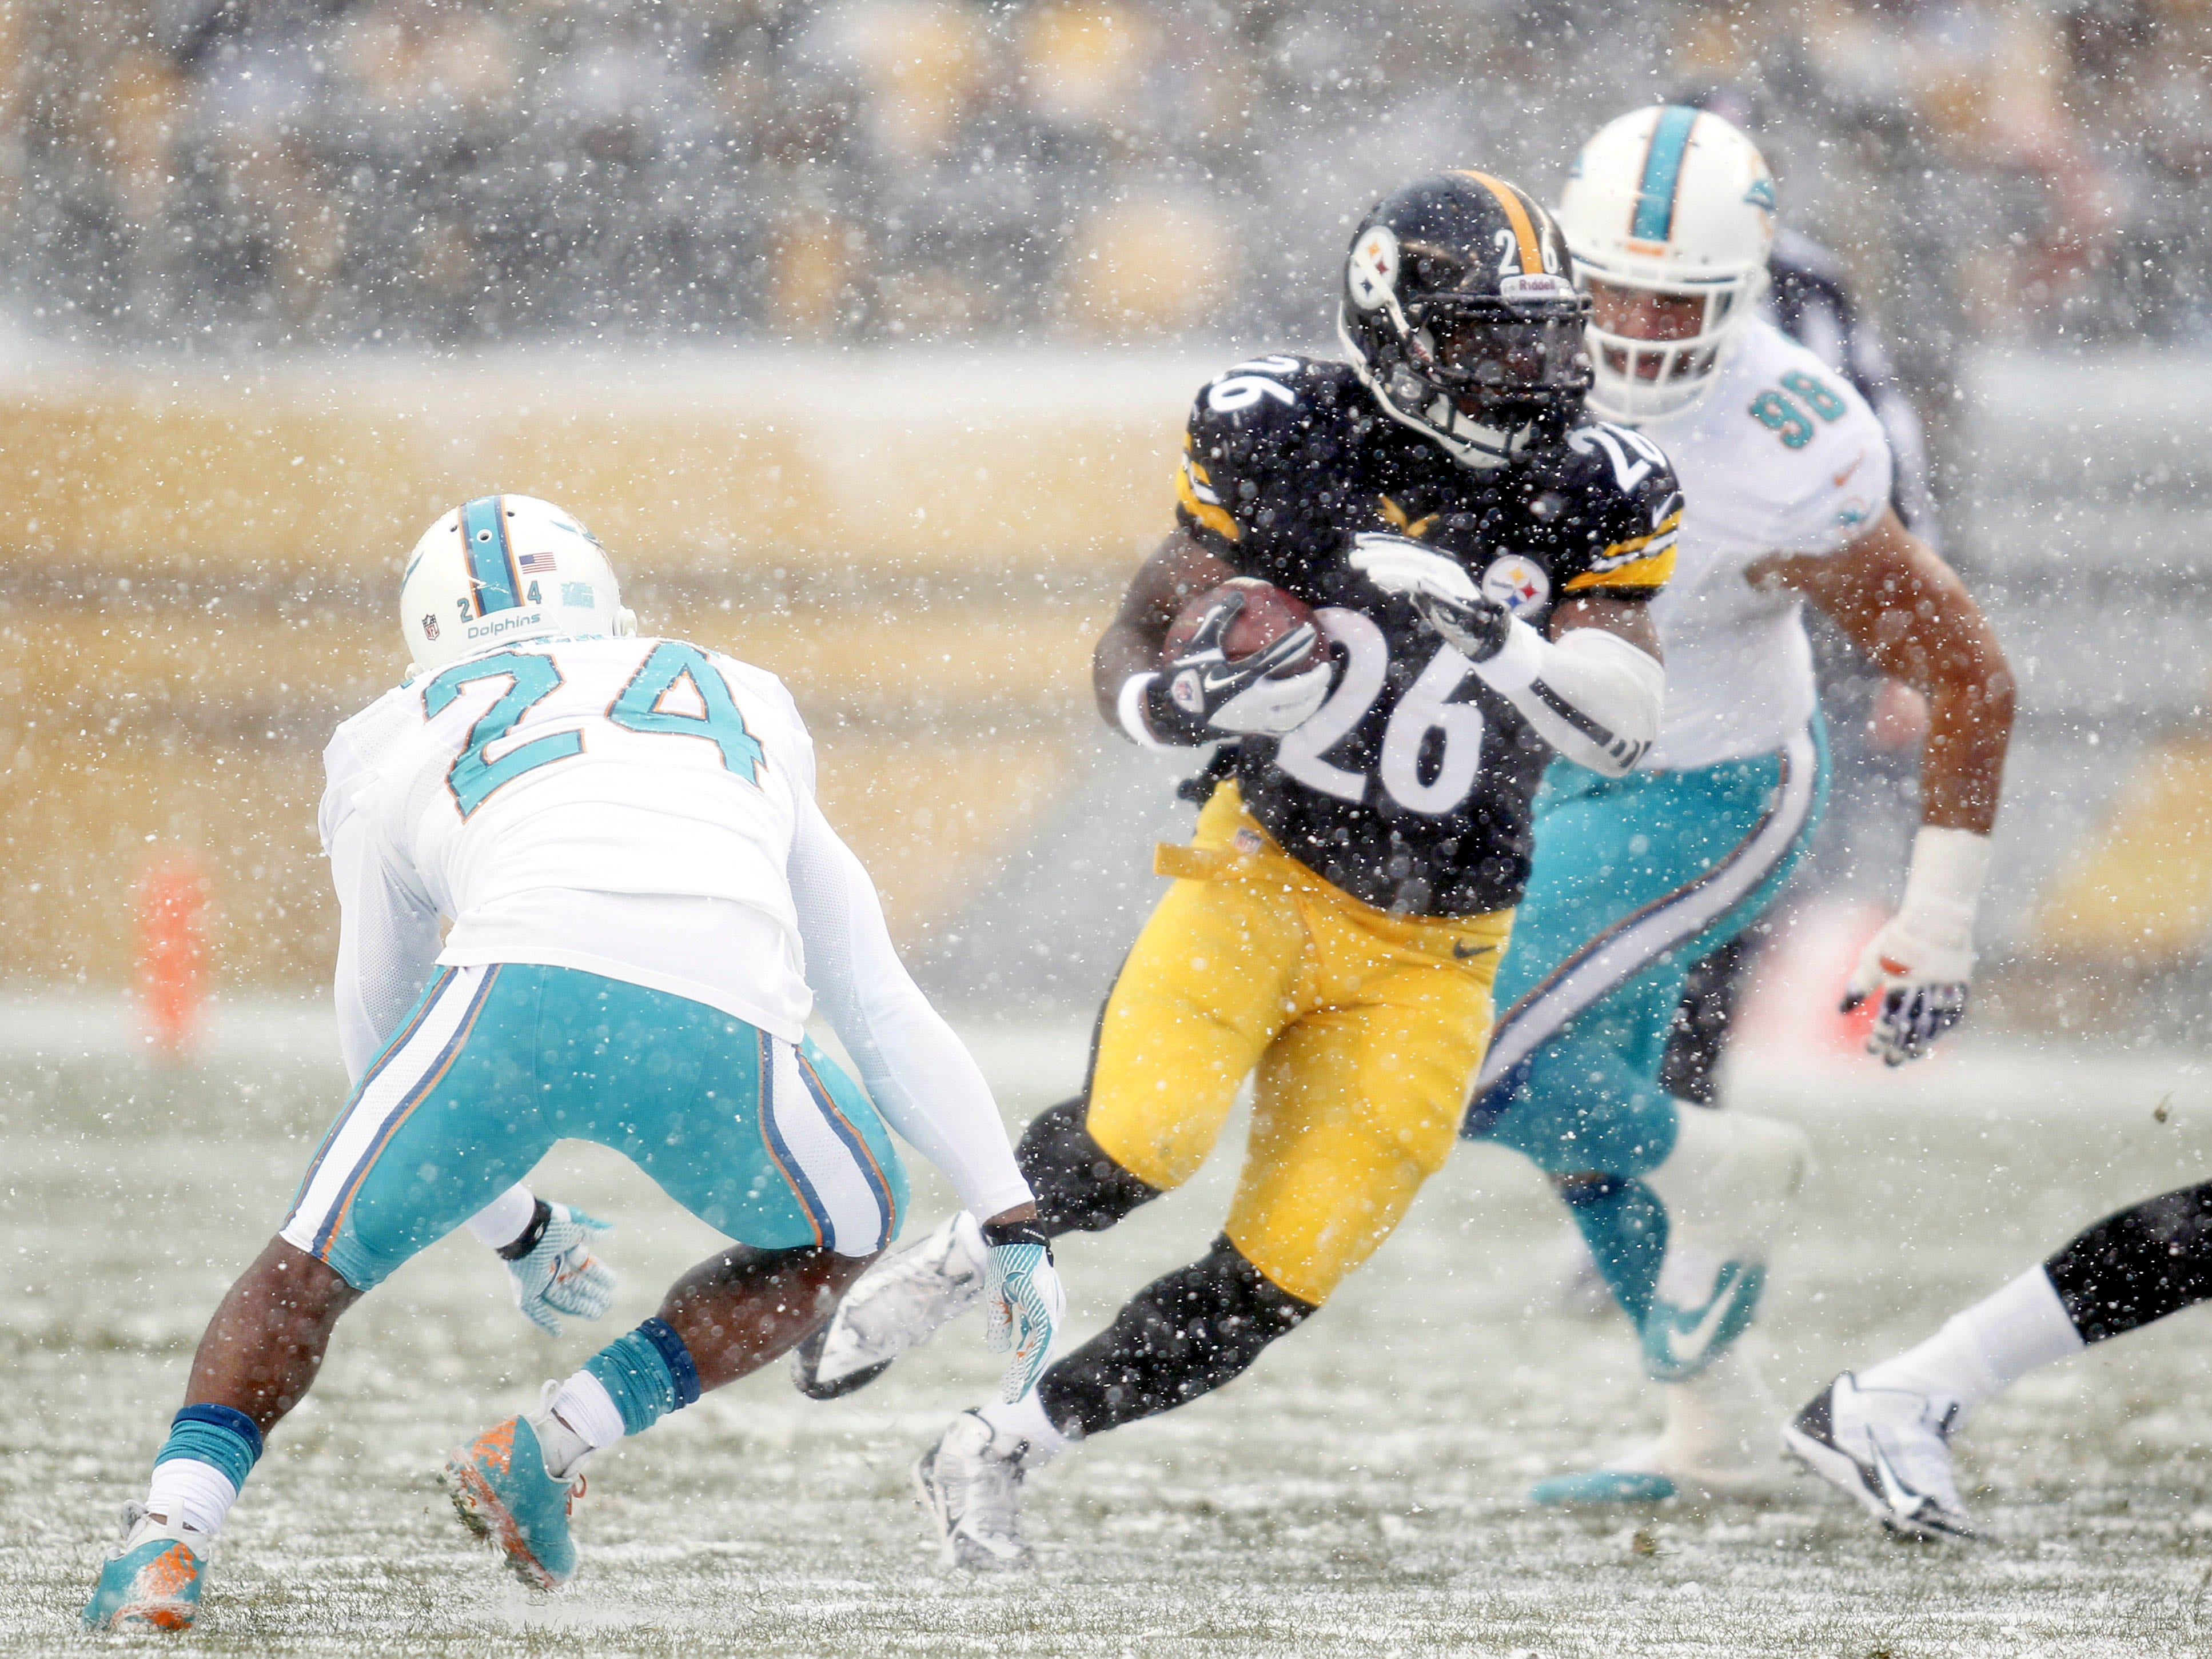 Dec. 8, 2013: Pittsburgh Steelers running back Le'Veon Bell carries the ball as Miami Dolphins cornerback Dimitri Patterson (24) and defensive tackle Jared Odrick (98) pursue during the first quarter at Heinz Field. The Dolphins won the game, 34-28.